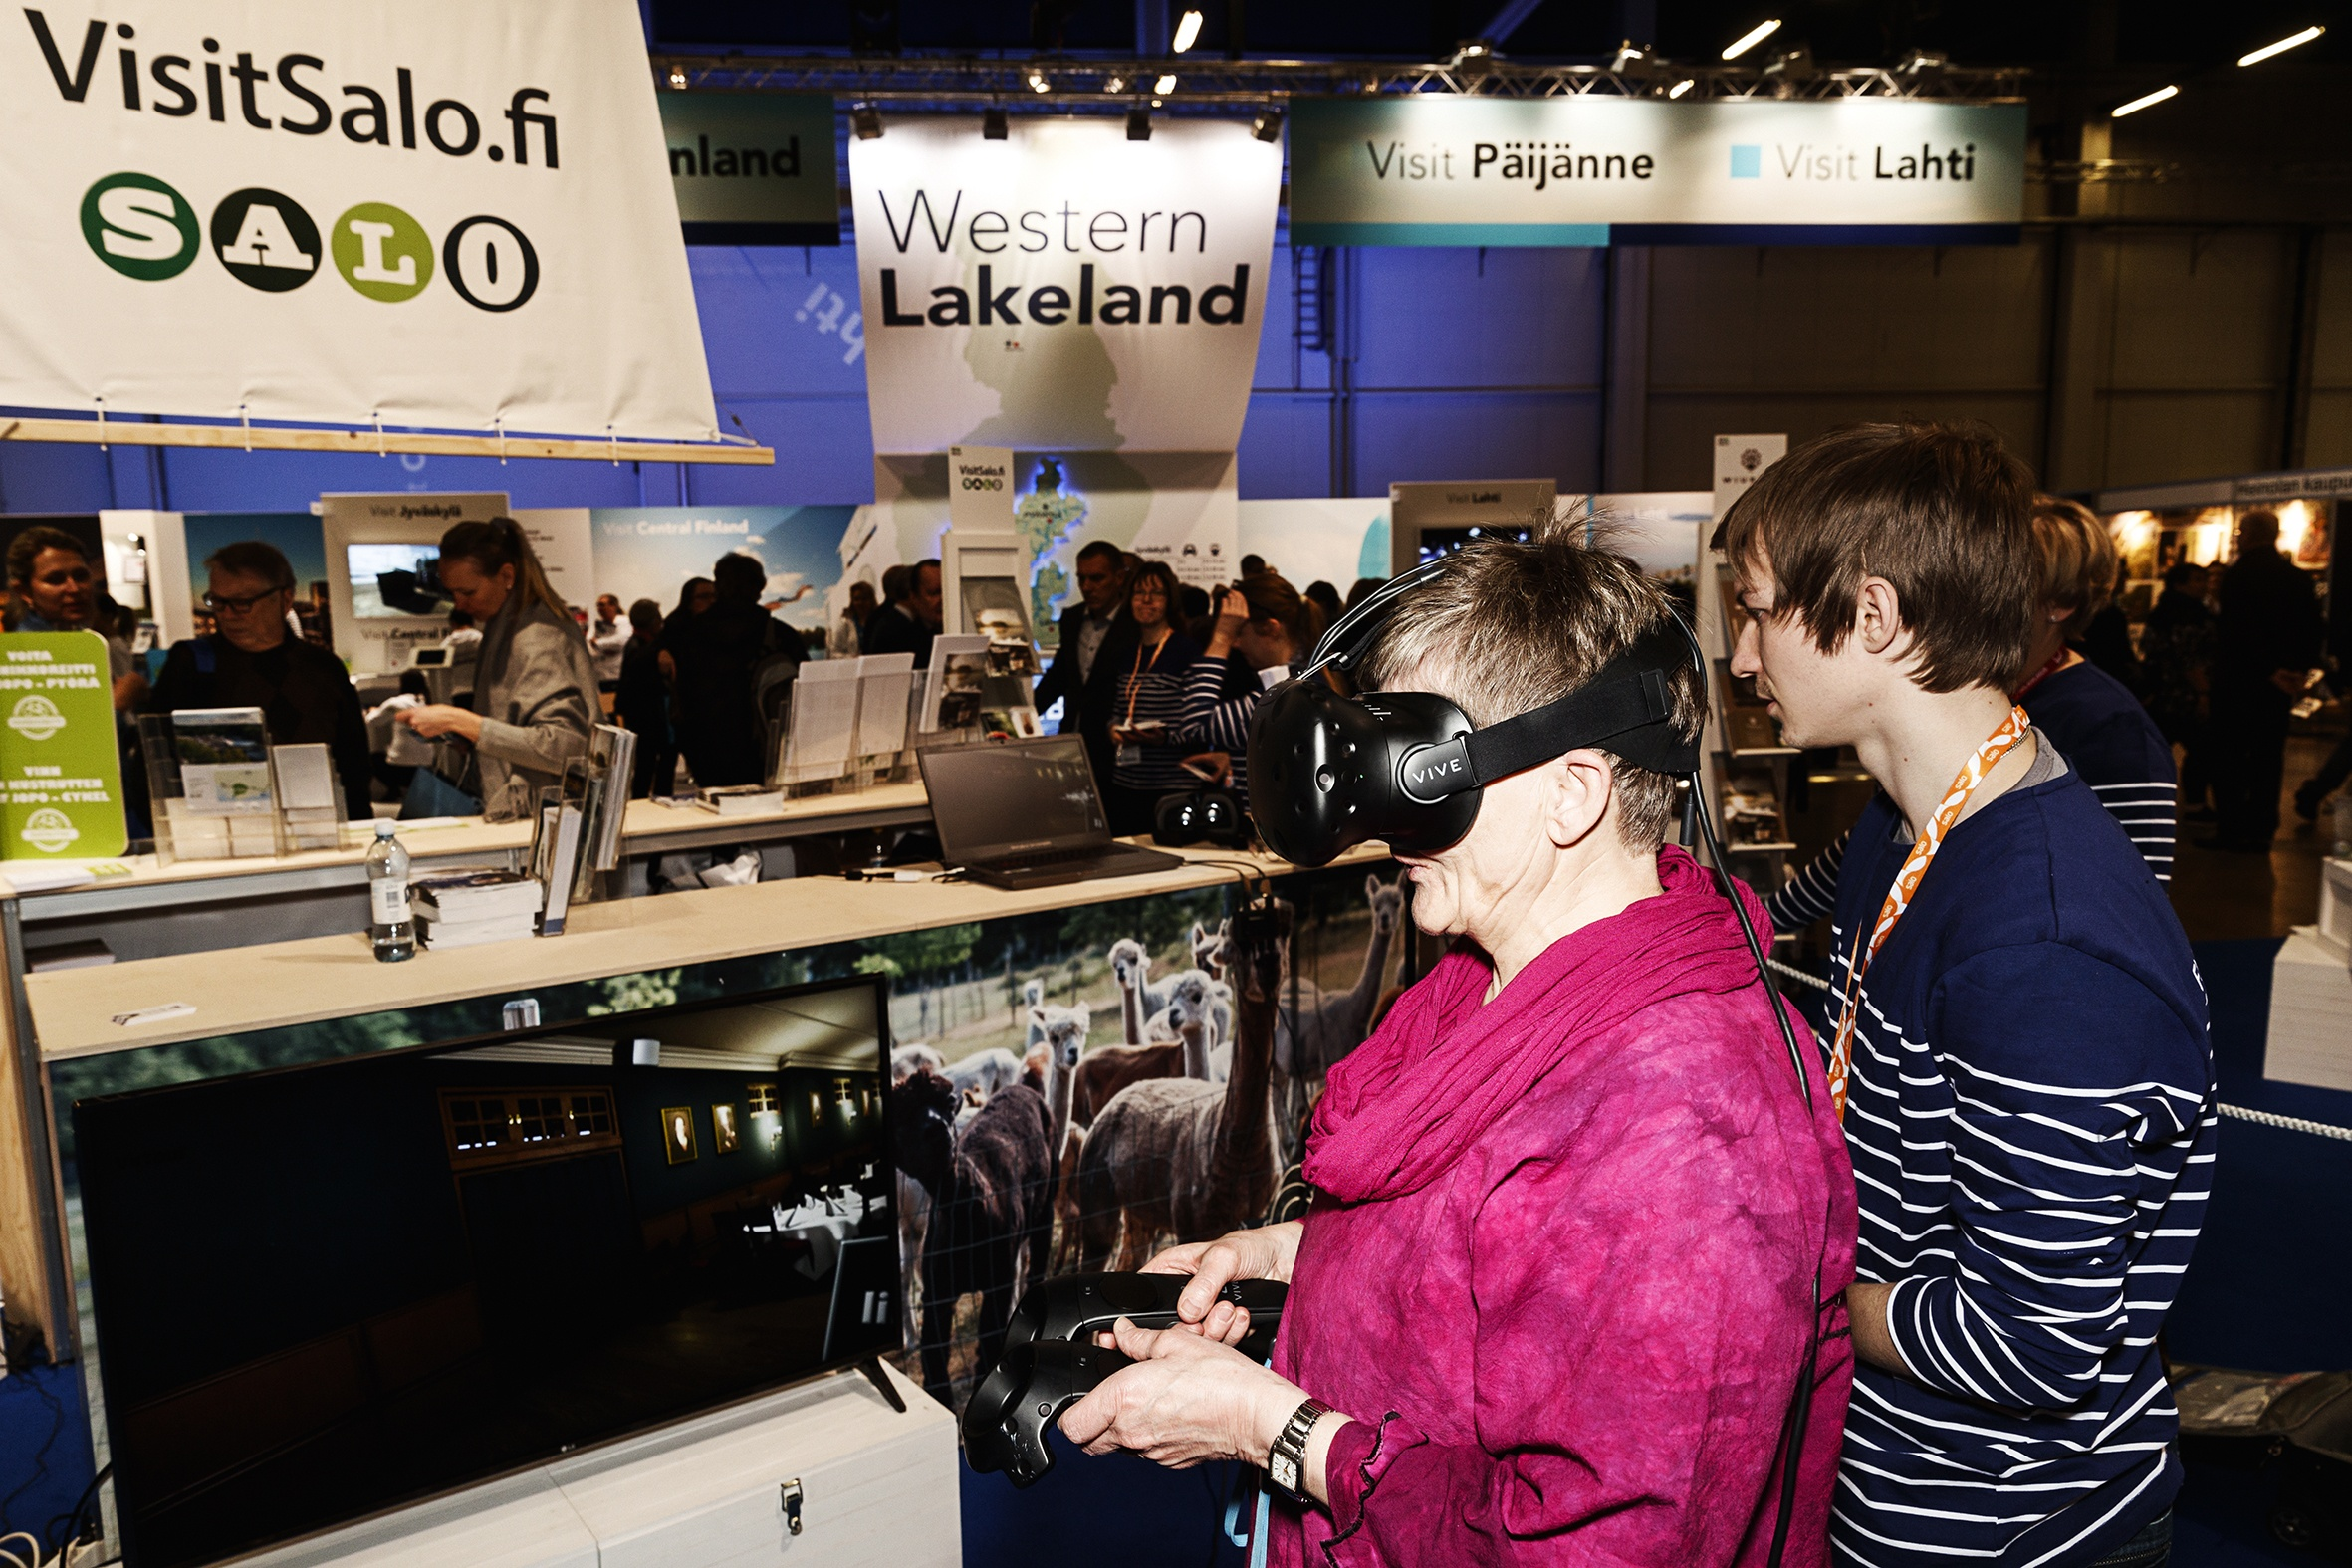 """How about trying a bit of virtual travelling? Visit Salo is letting people pop into some of the area's attractions via a VR headset, which also enables virtual foraging and fishing. But should one still actually visit Salo in real life? """"Of course!"""" says project coordinator Tina Koski. """"There's plenty more, including the Electronics Museum, summer markets and beautiful nature."""""""